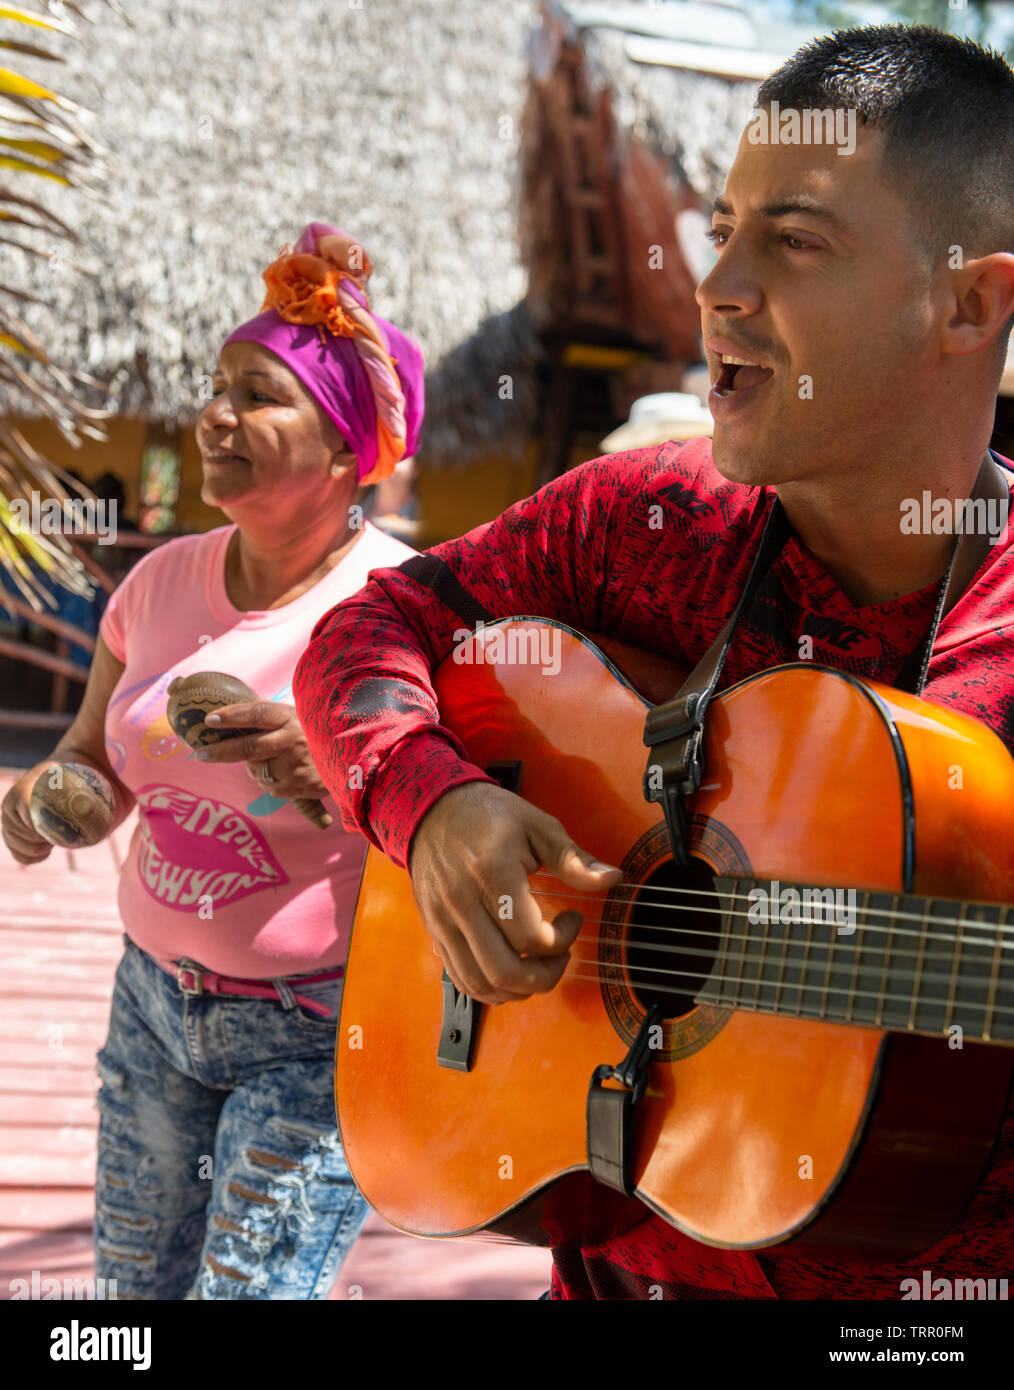 Male guitarist and female singer entertain tourists on Cayo Levisa (island) in the Los Colorados archipelago, Cuba, Caribbean - Stock Image